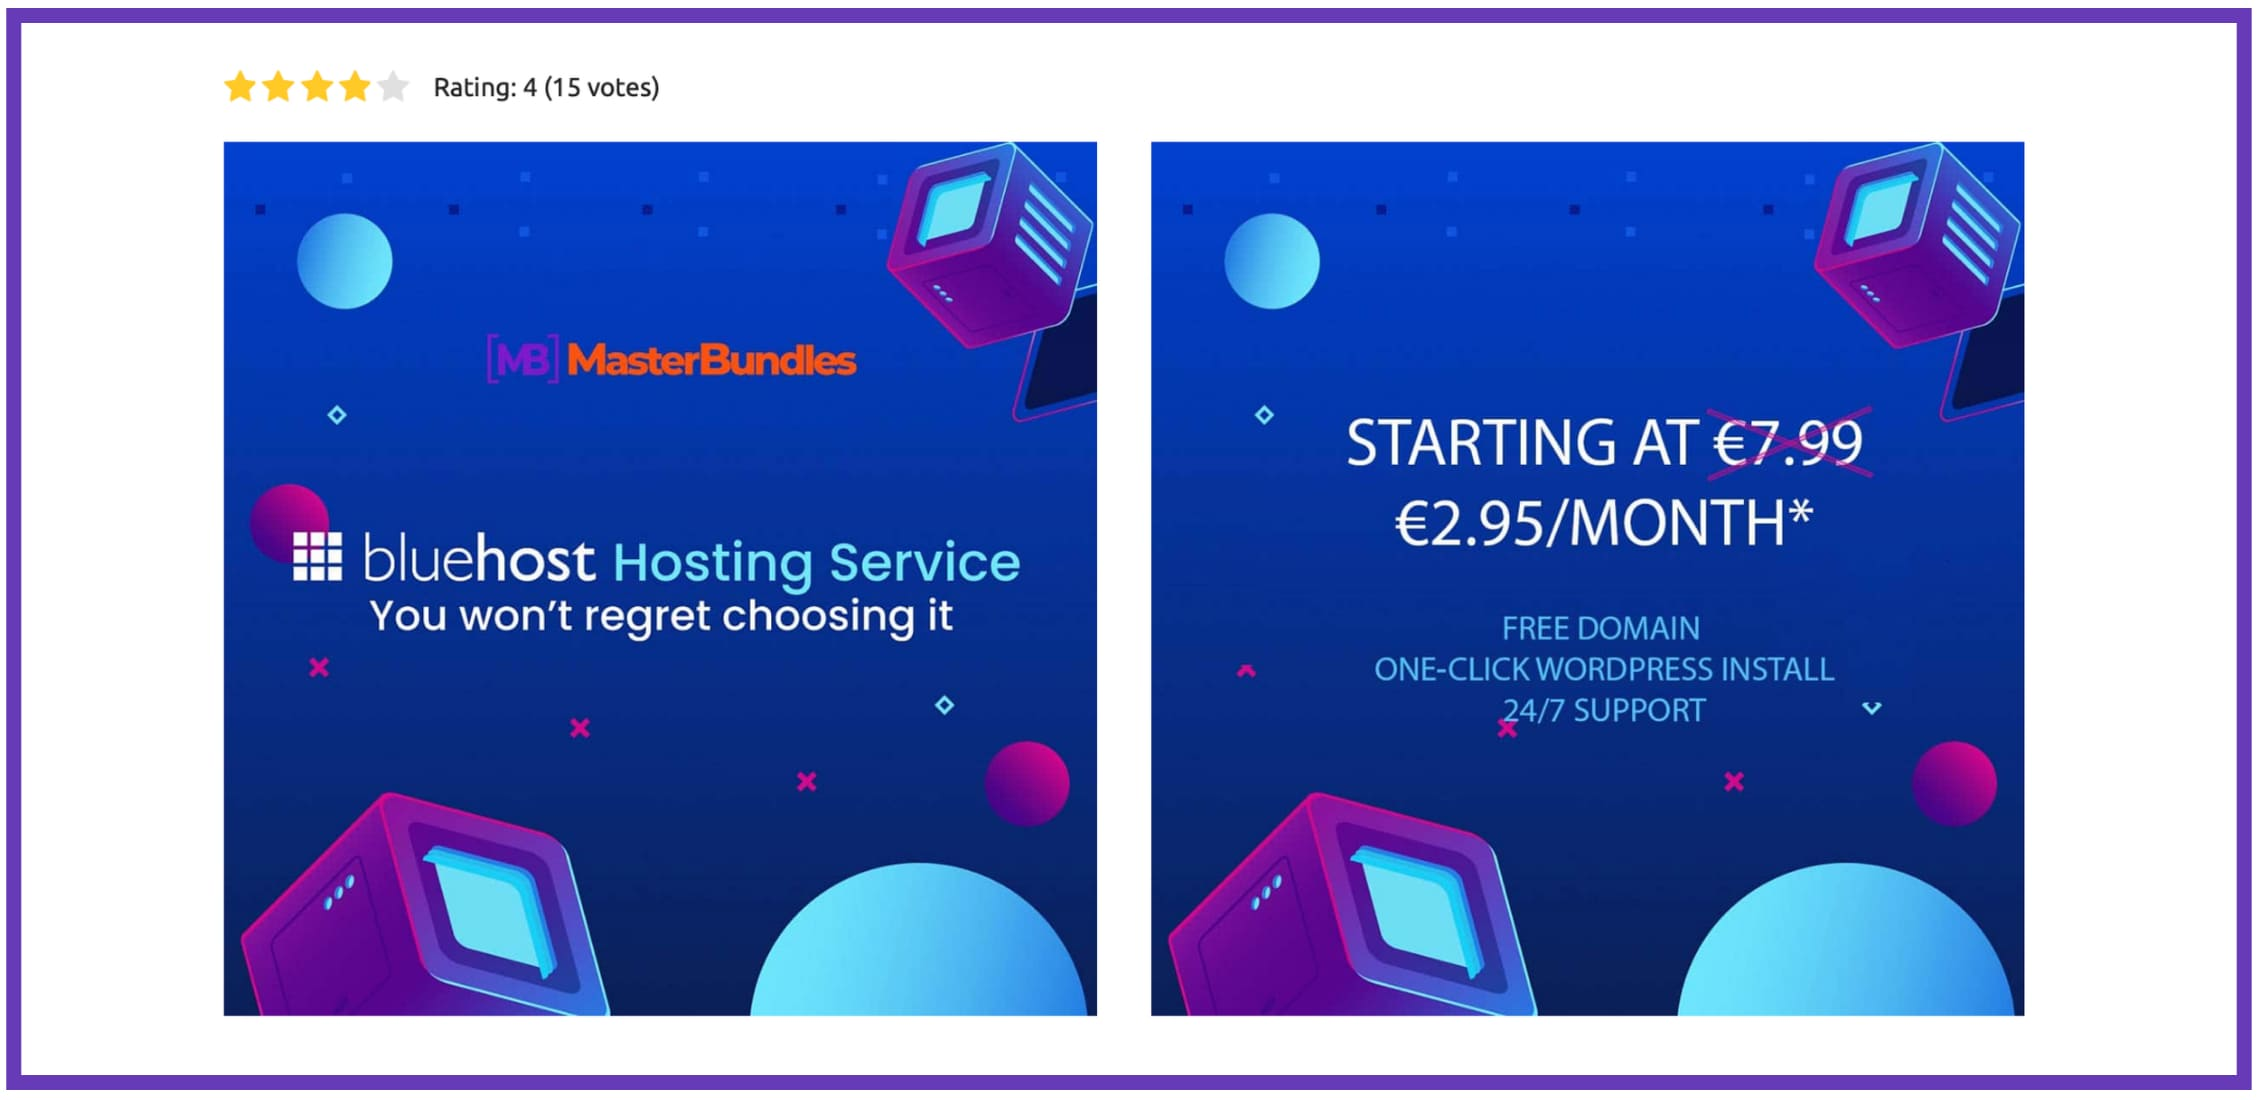 Bluehost Review 2021: Recommended Hosting For WordPress Since 2005 - bluehost promocode offer